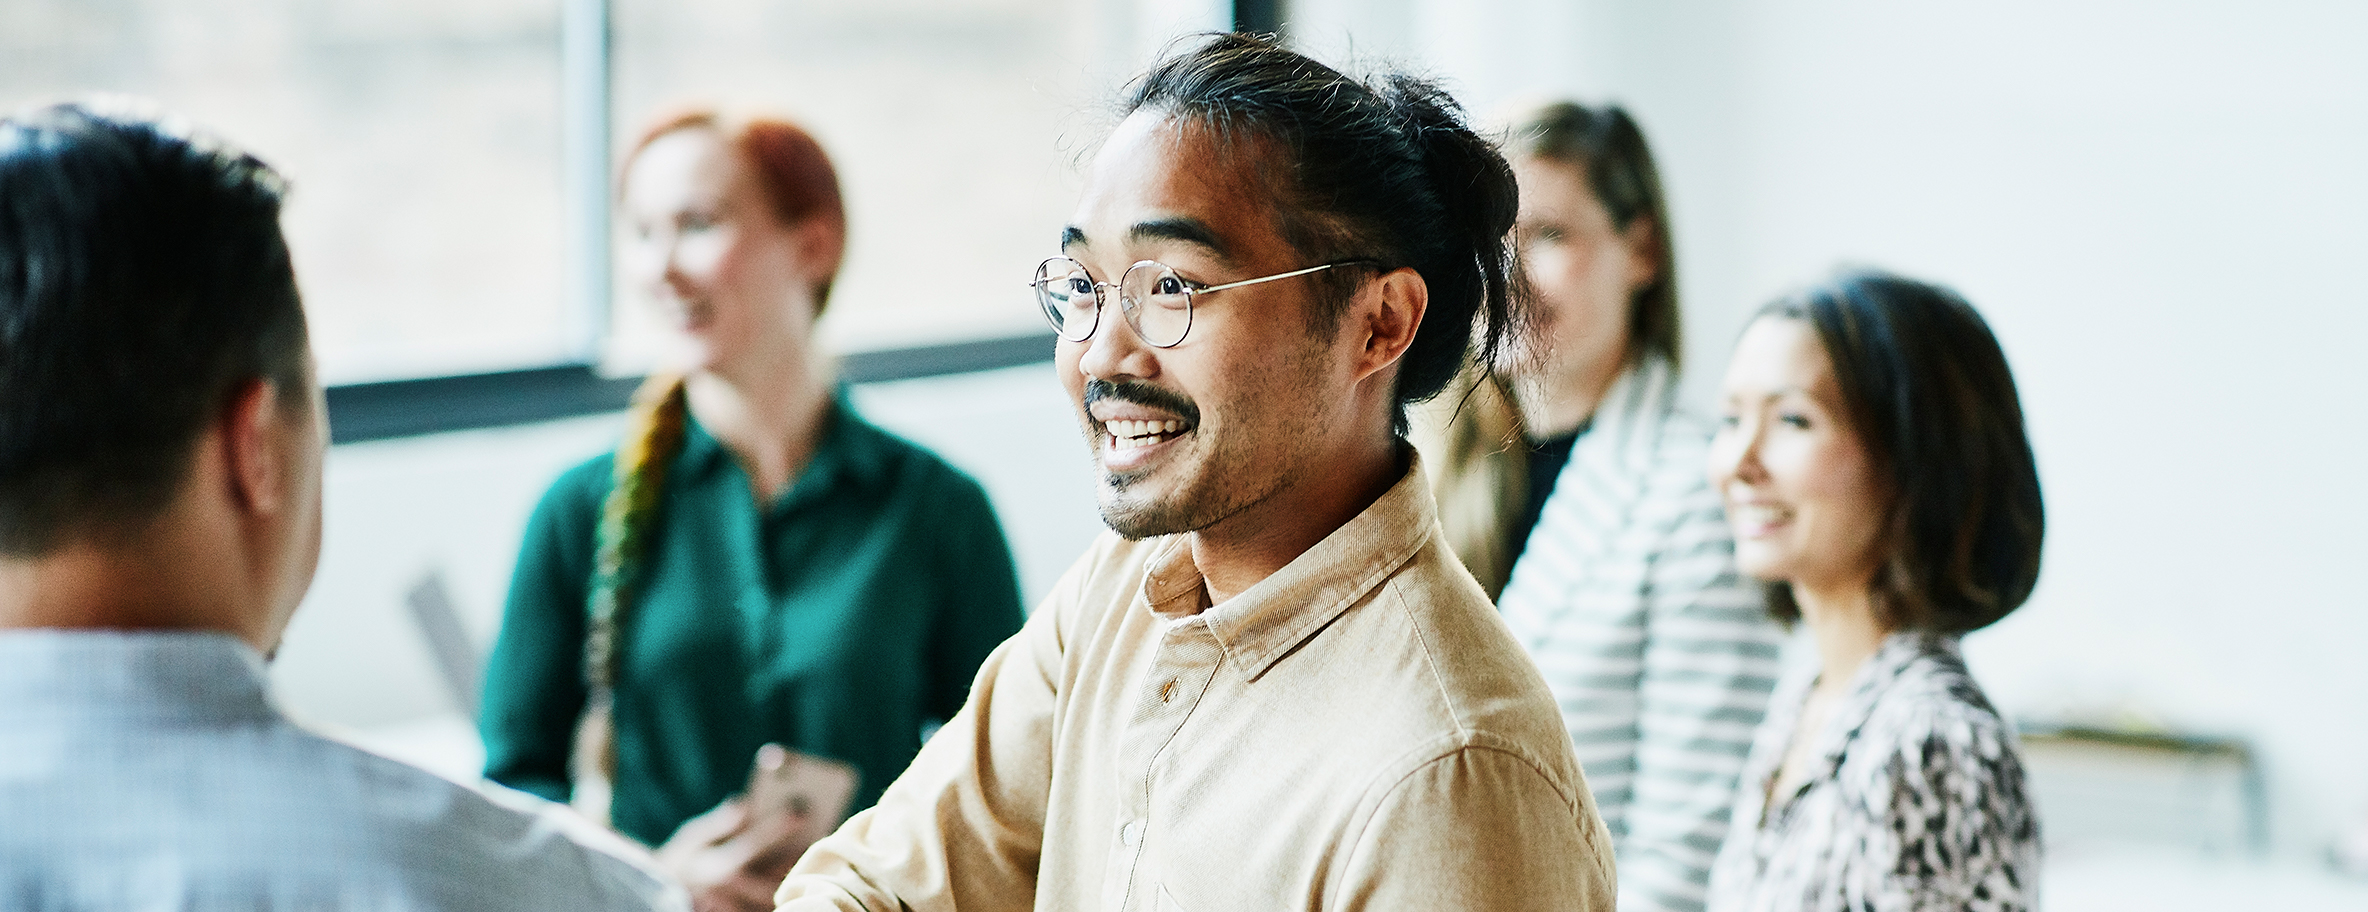 Man in glasses and man bun shaking hands with colleague